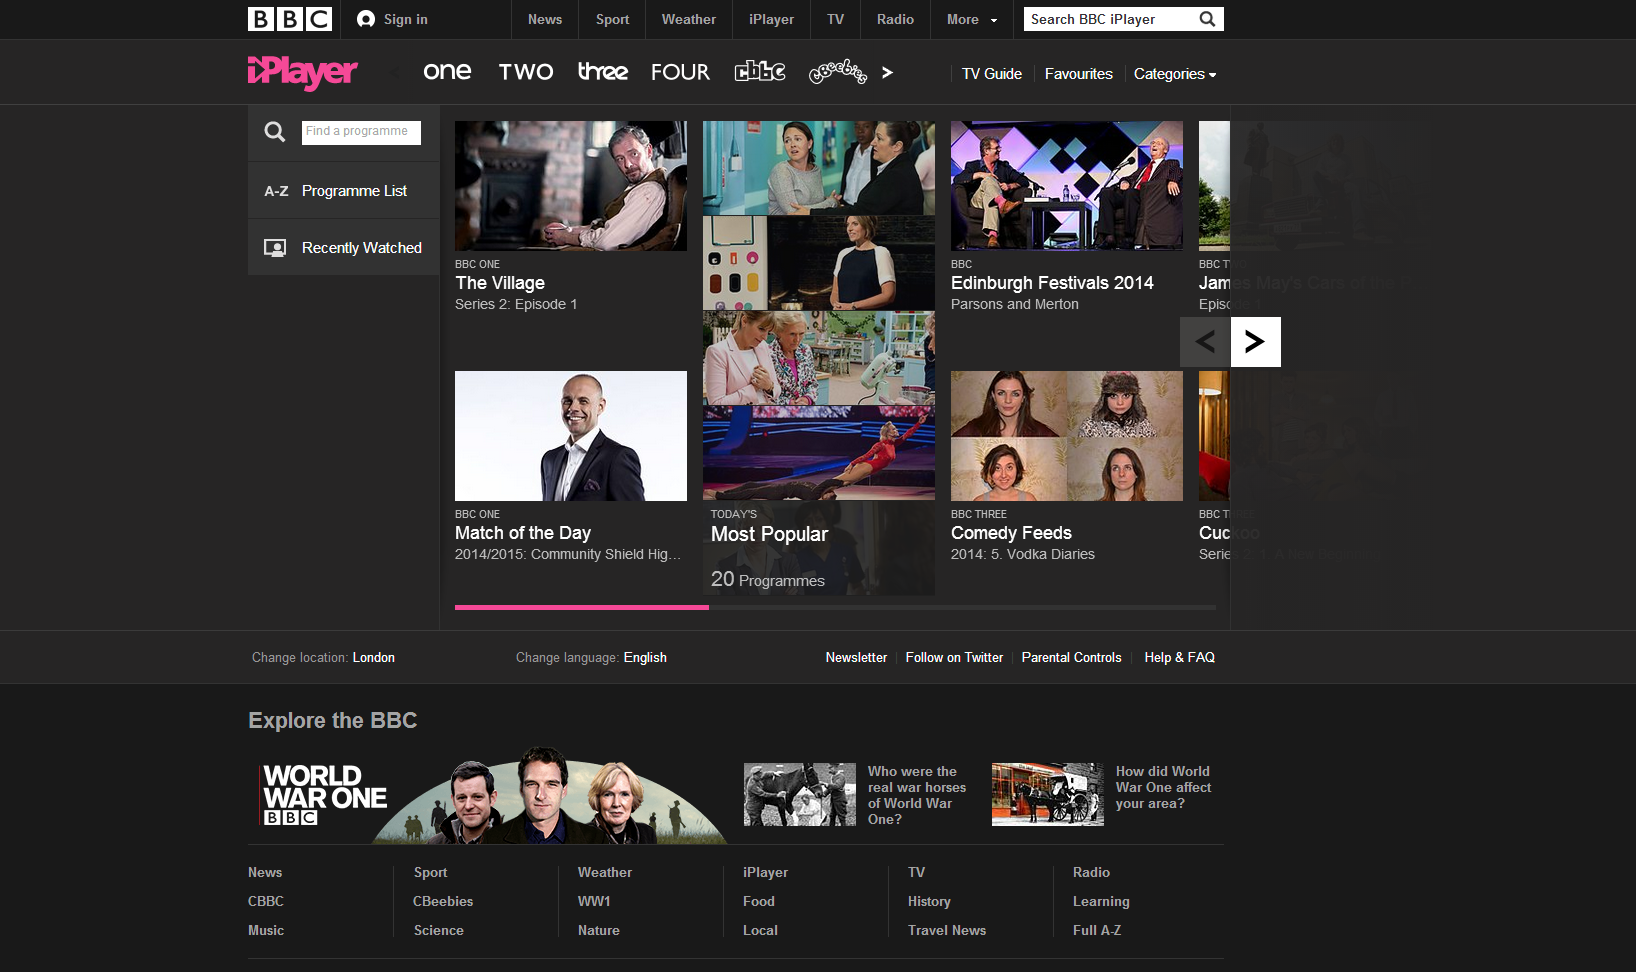 BBC iPlayer launching on Xbox One by end of 2014